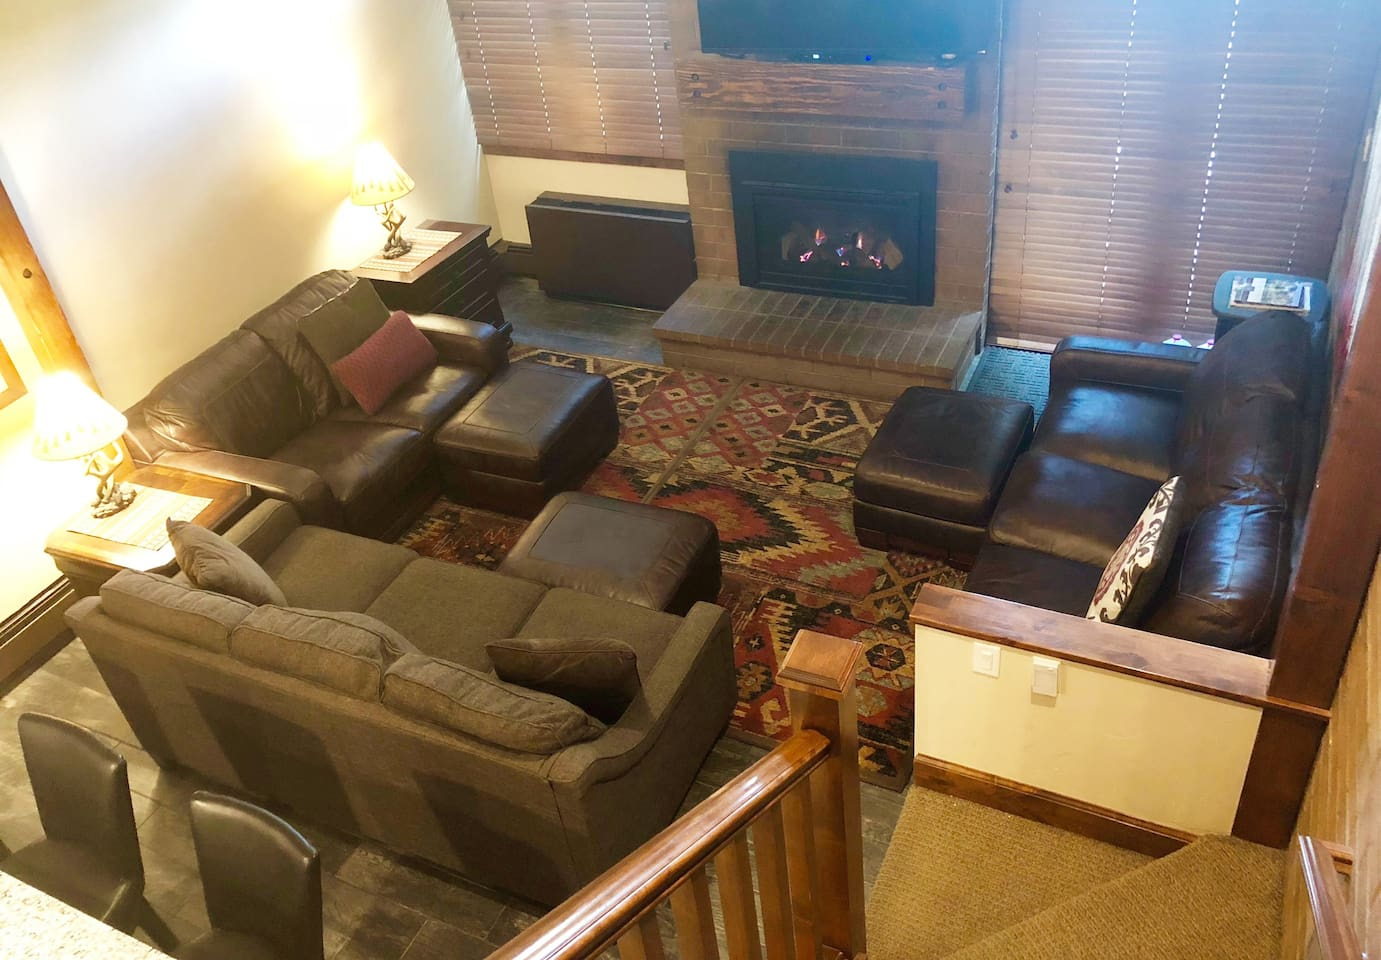 The living room provides an excellent place to relax, watch tv, and sit by the cozy fire. Plenty of seating for everyone to stretch out!